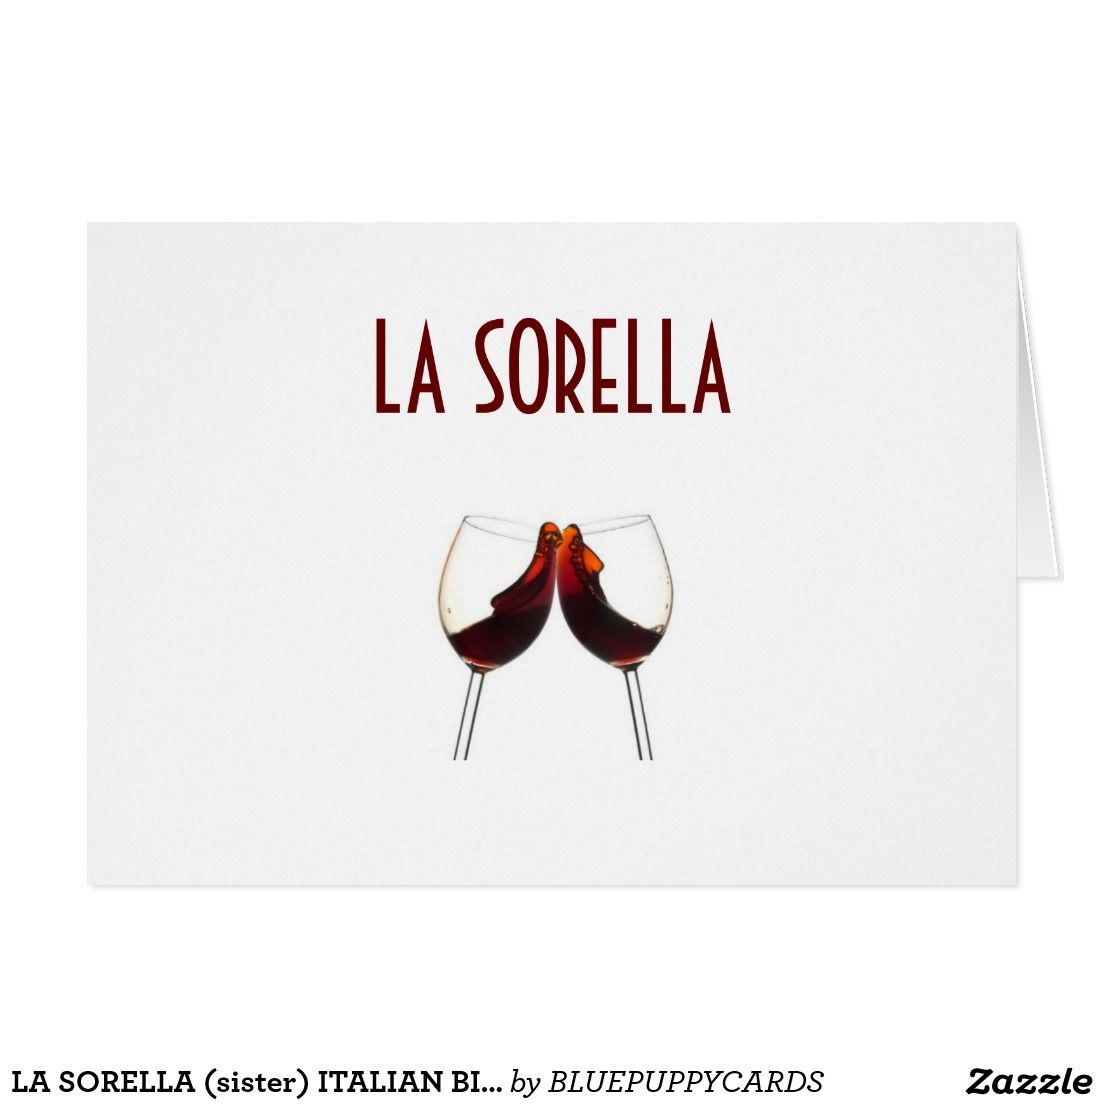 La Sorella Sister Italian Birthday Card And Check Out My Other